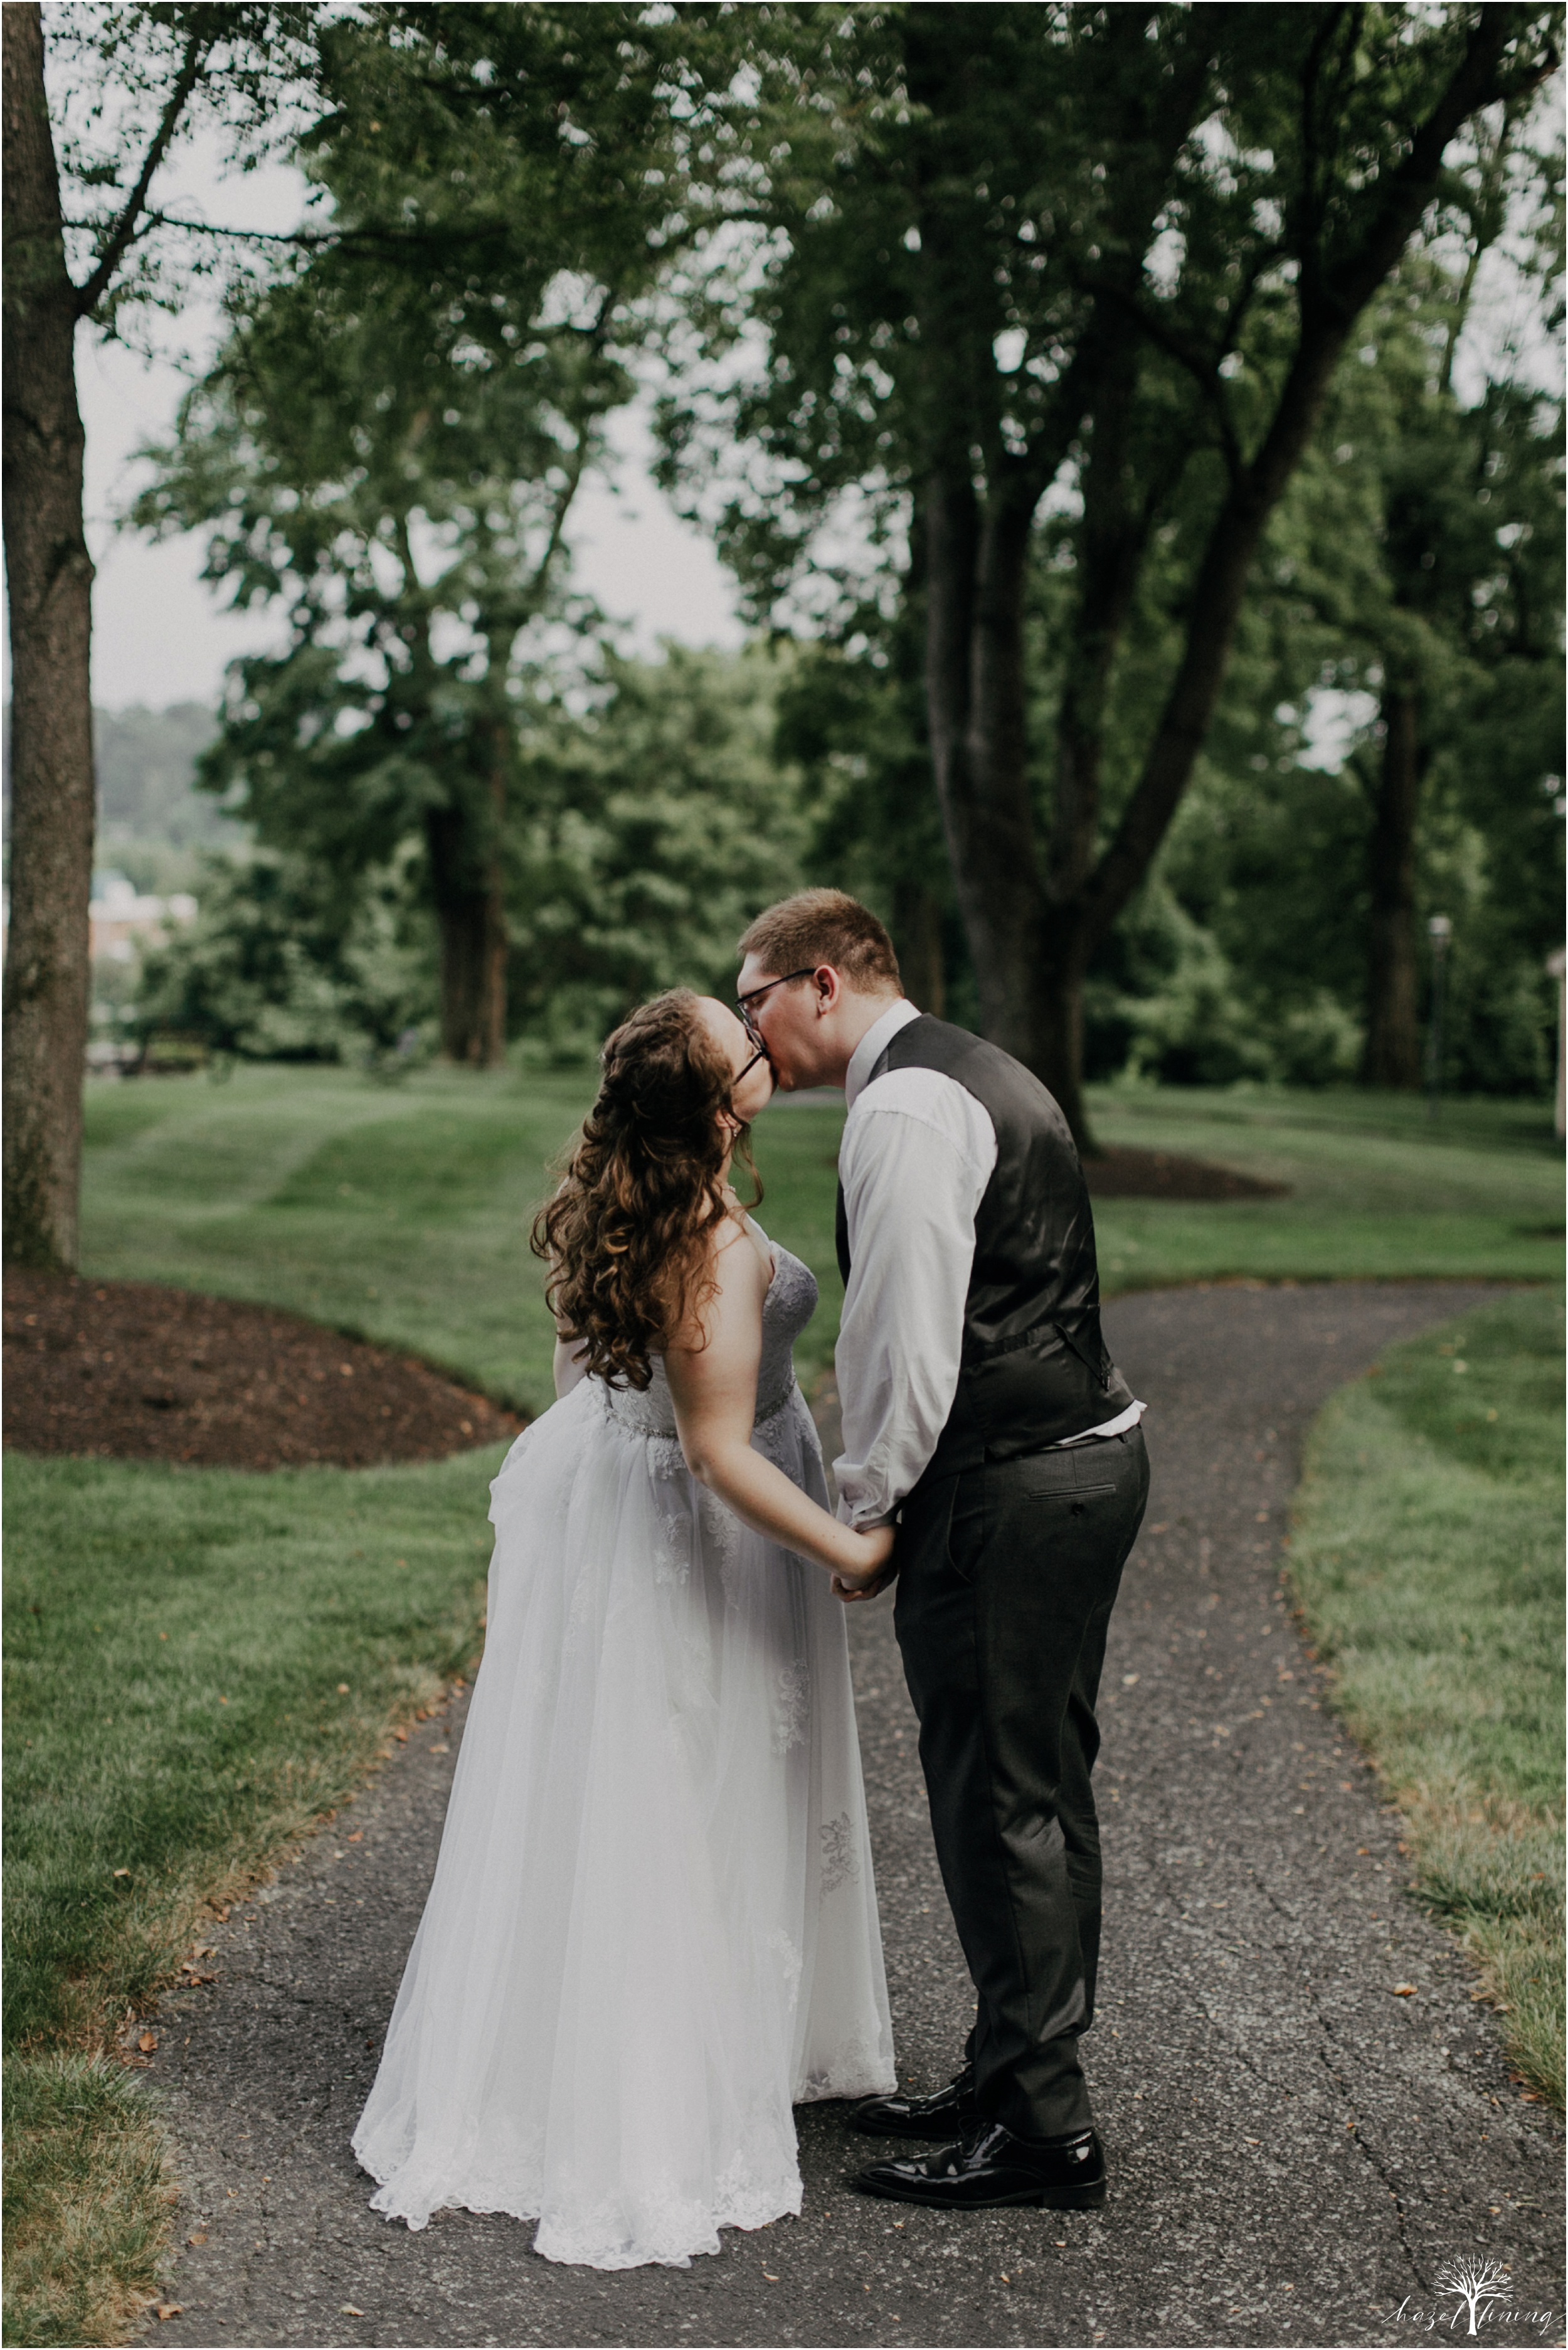 laura-zach-mccaskill-harmony-hall-lebanon-valley-college-summer-wedding-hazel-lining-photography-destination-elopement-wedding-engagement-photography_0151.jpg